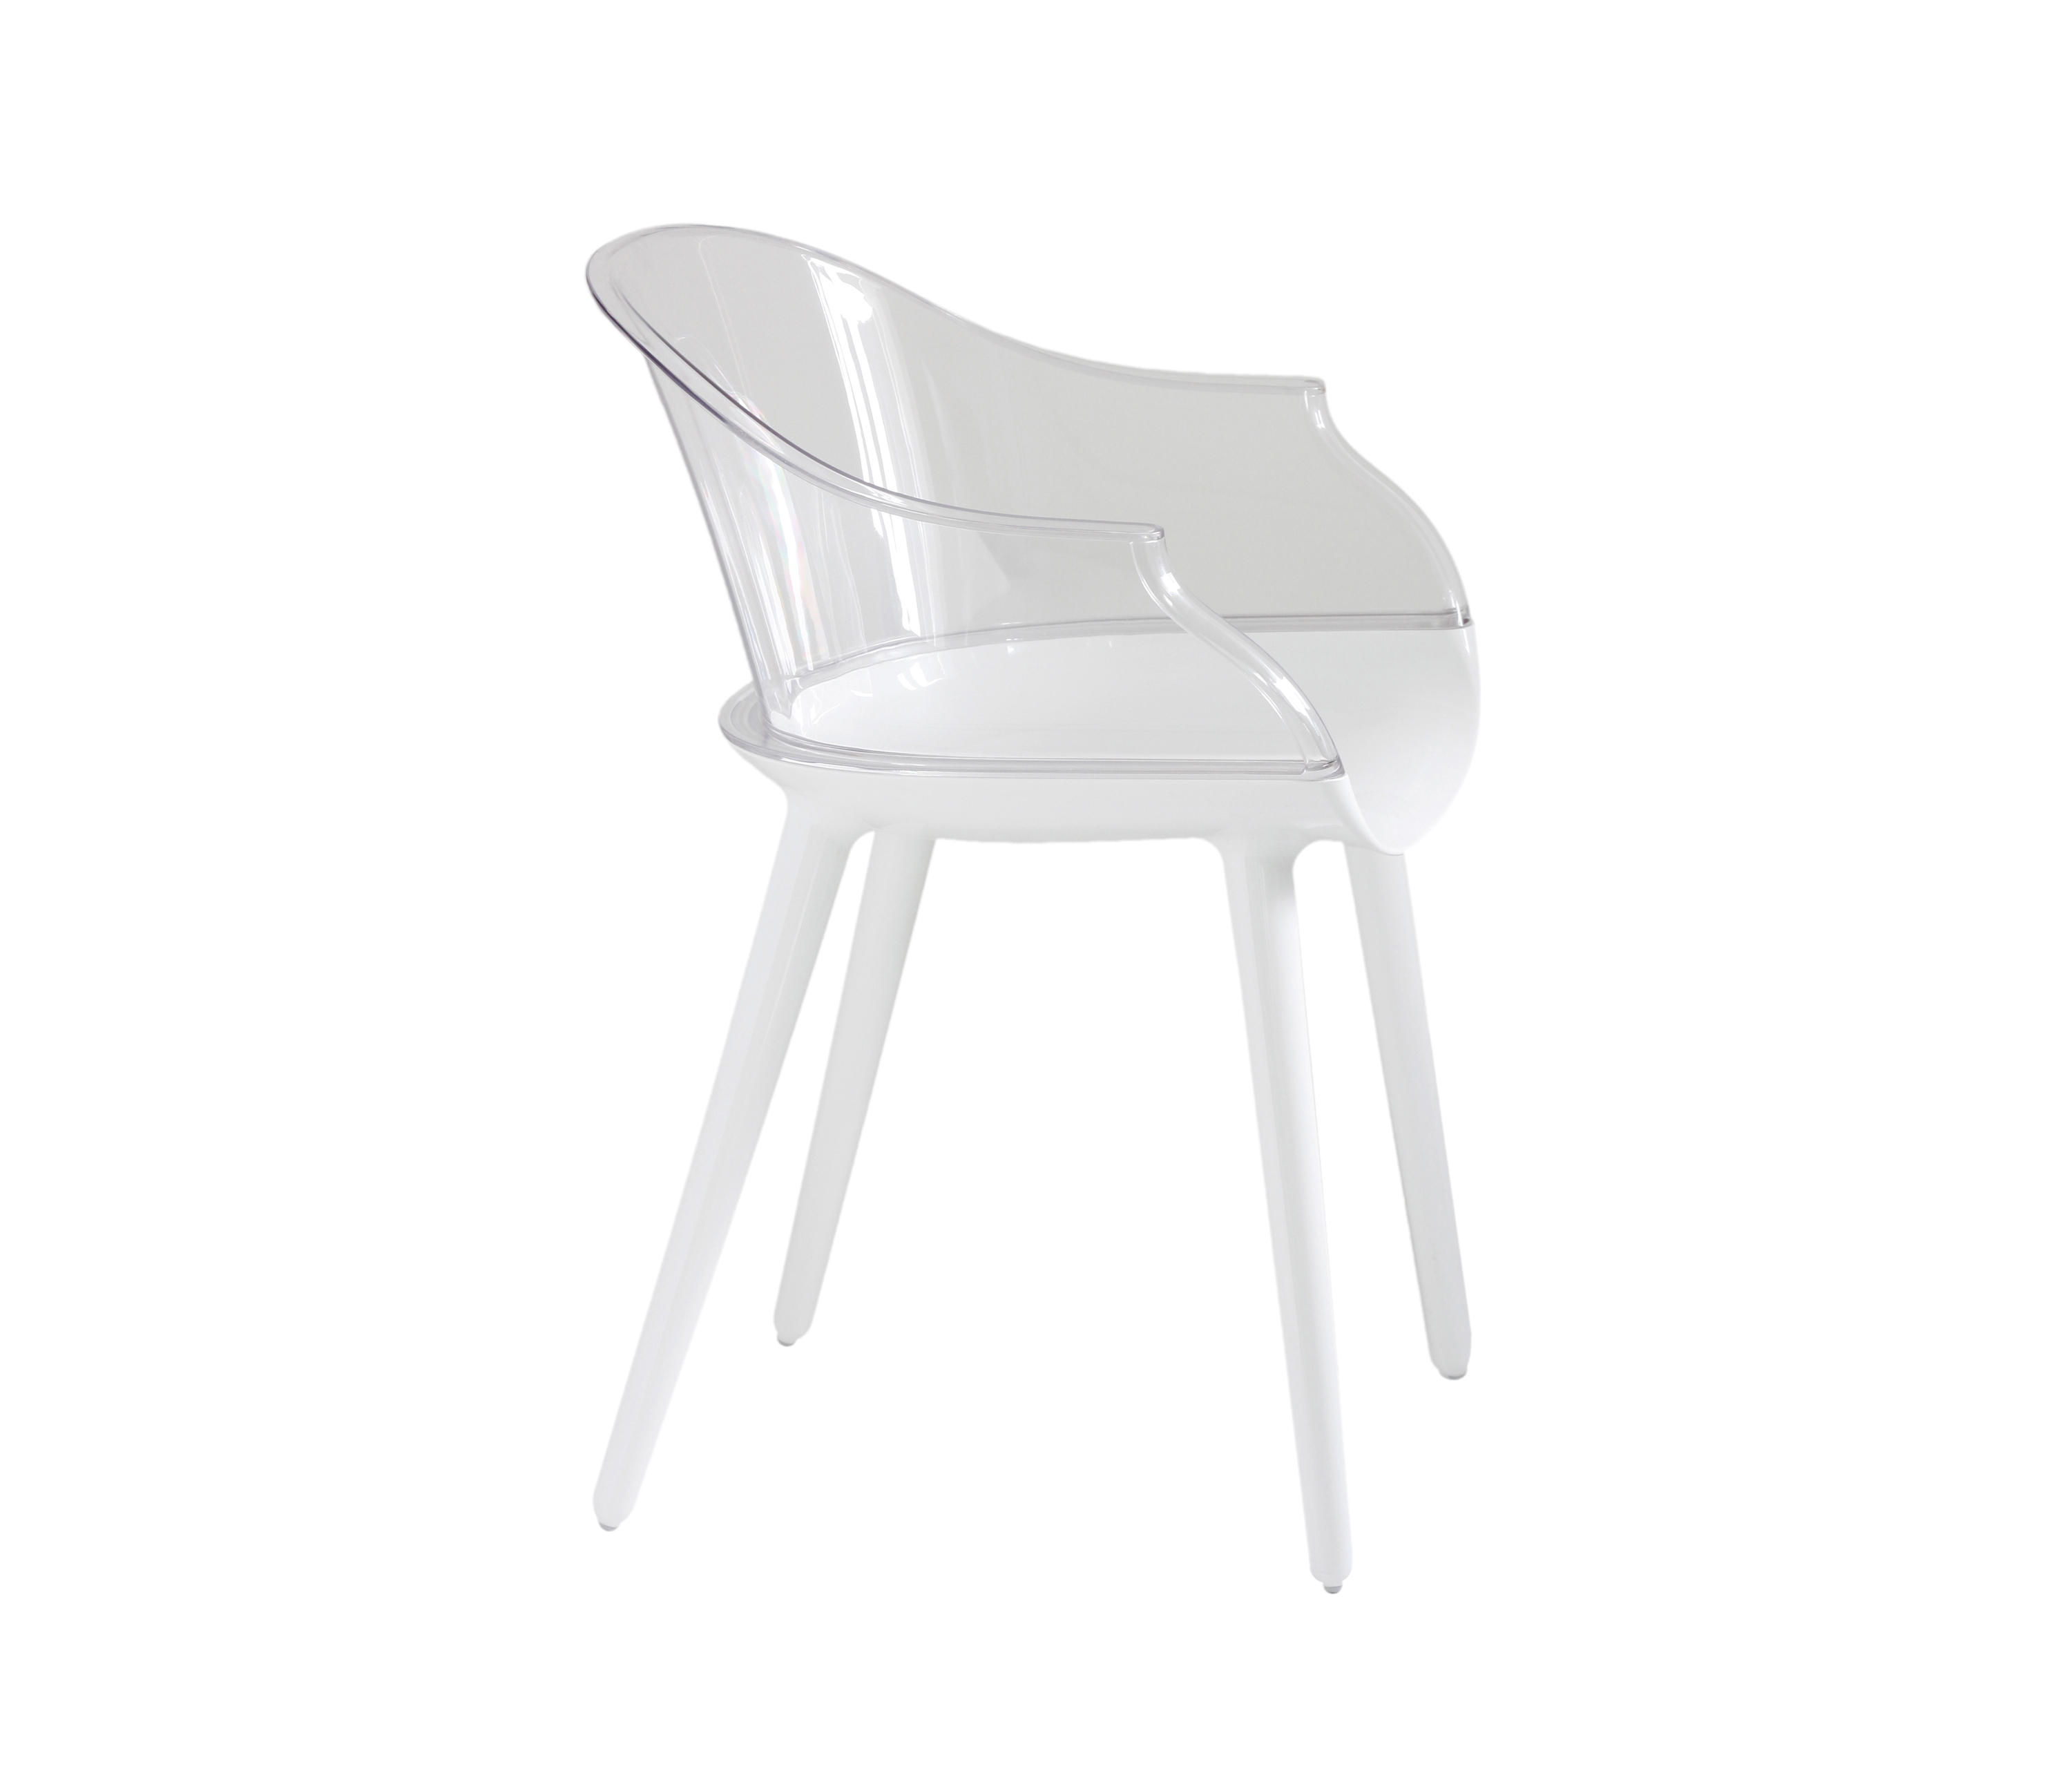 Cyborg chair restaurant chairs from magis architonic for Magis cyborg